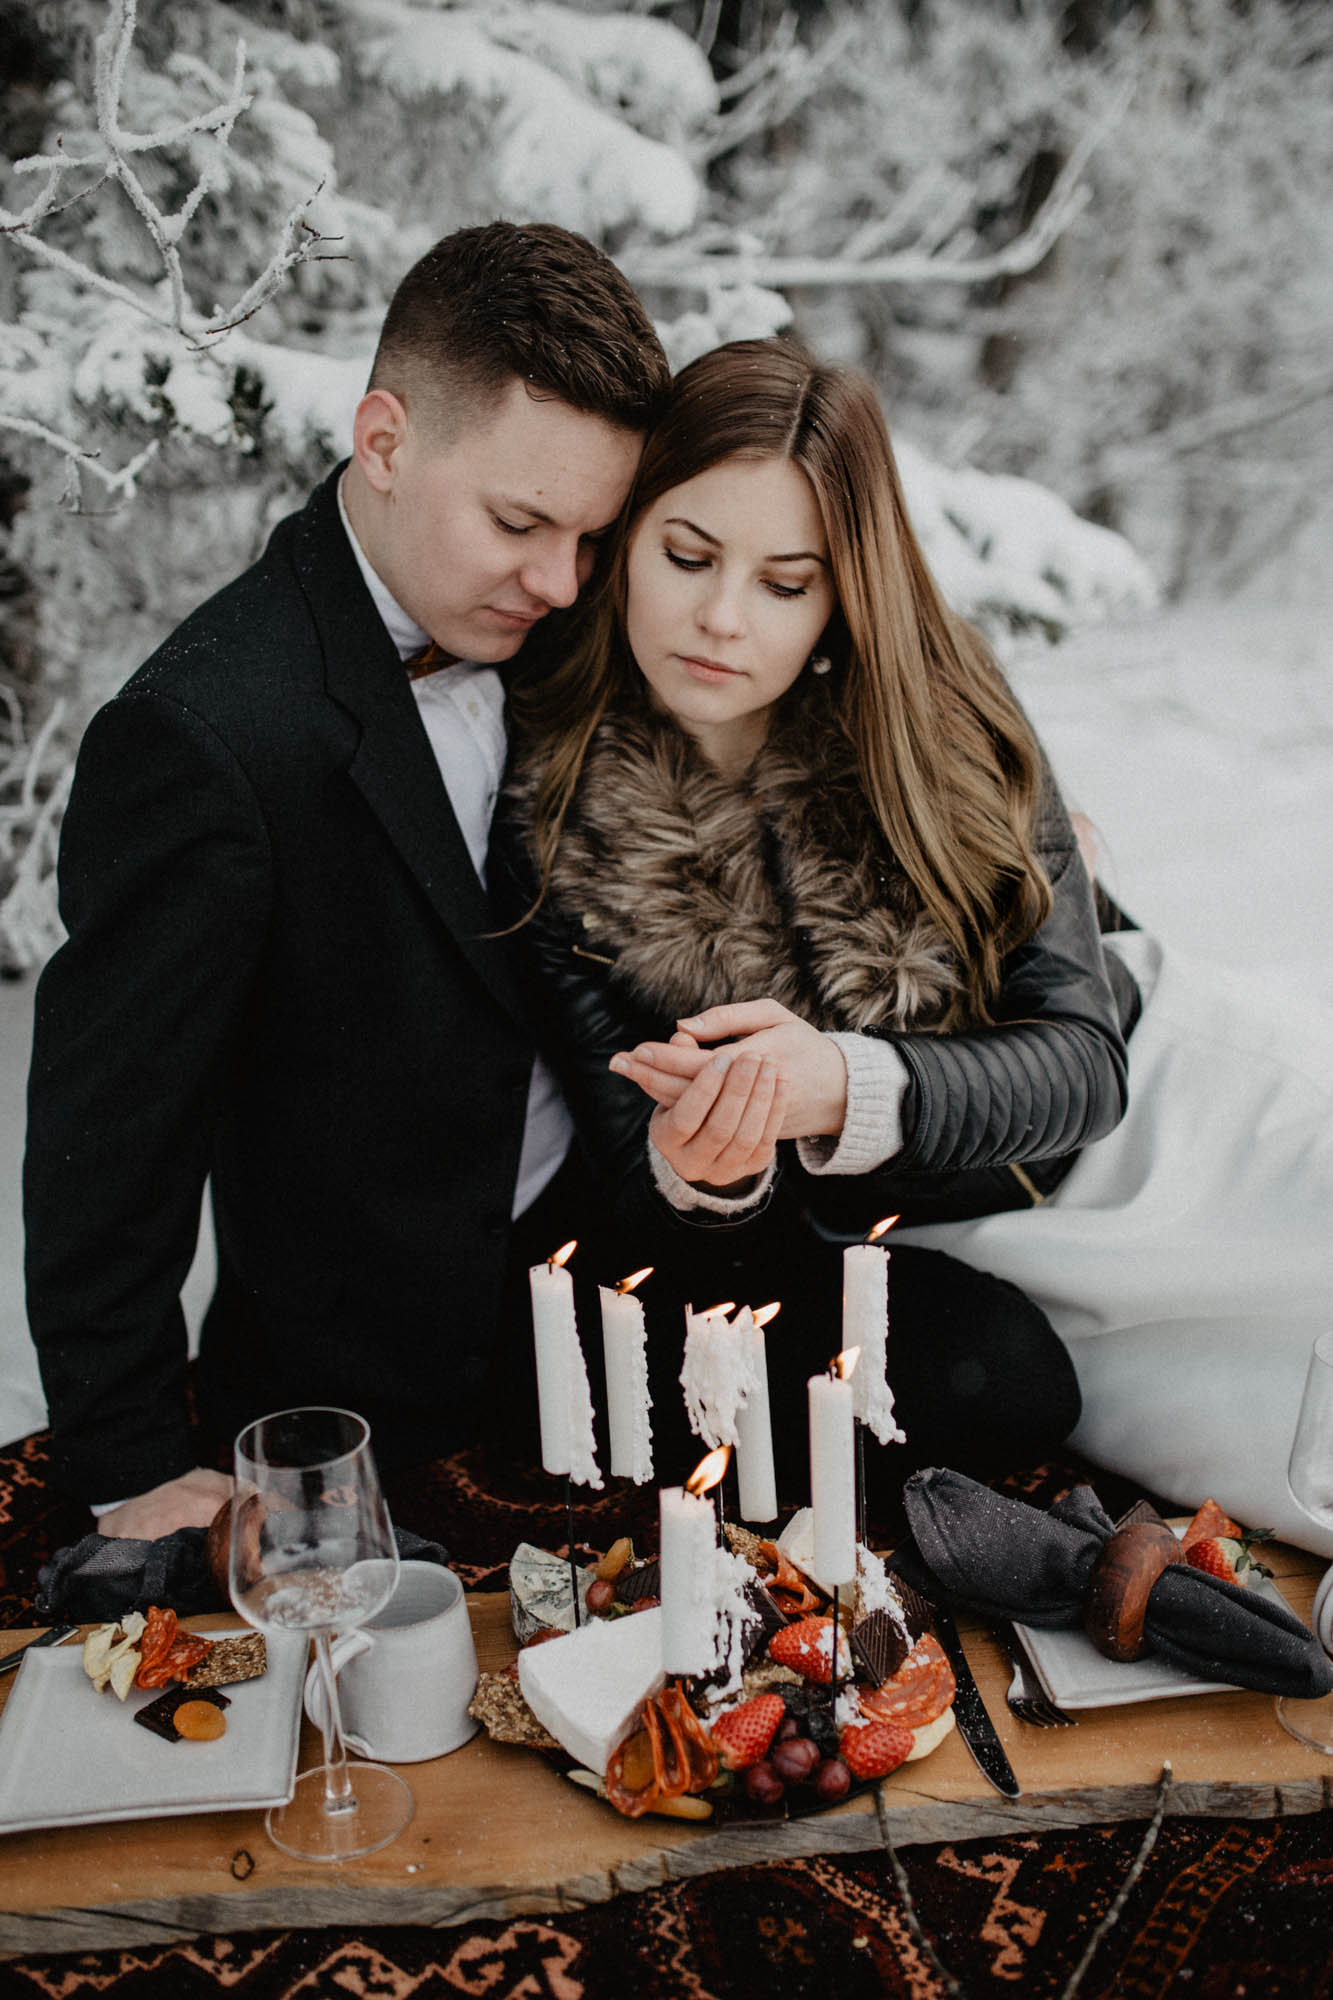 ashley_schulman_photography-winter_wedding_tampere-50.jpg